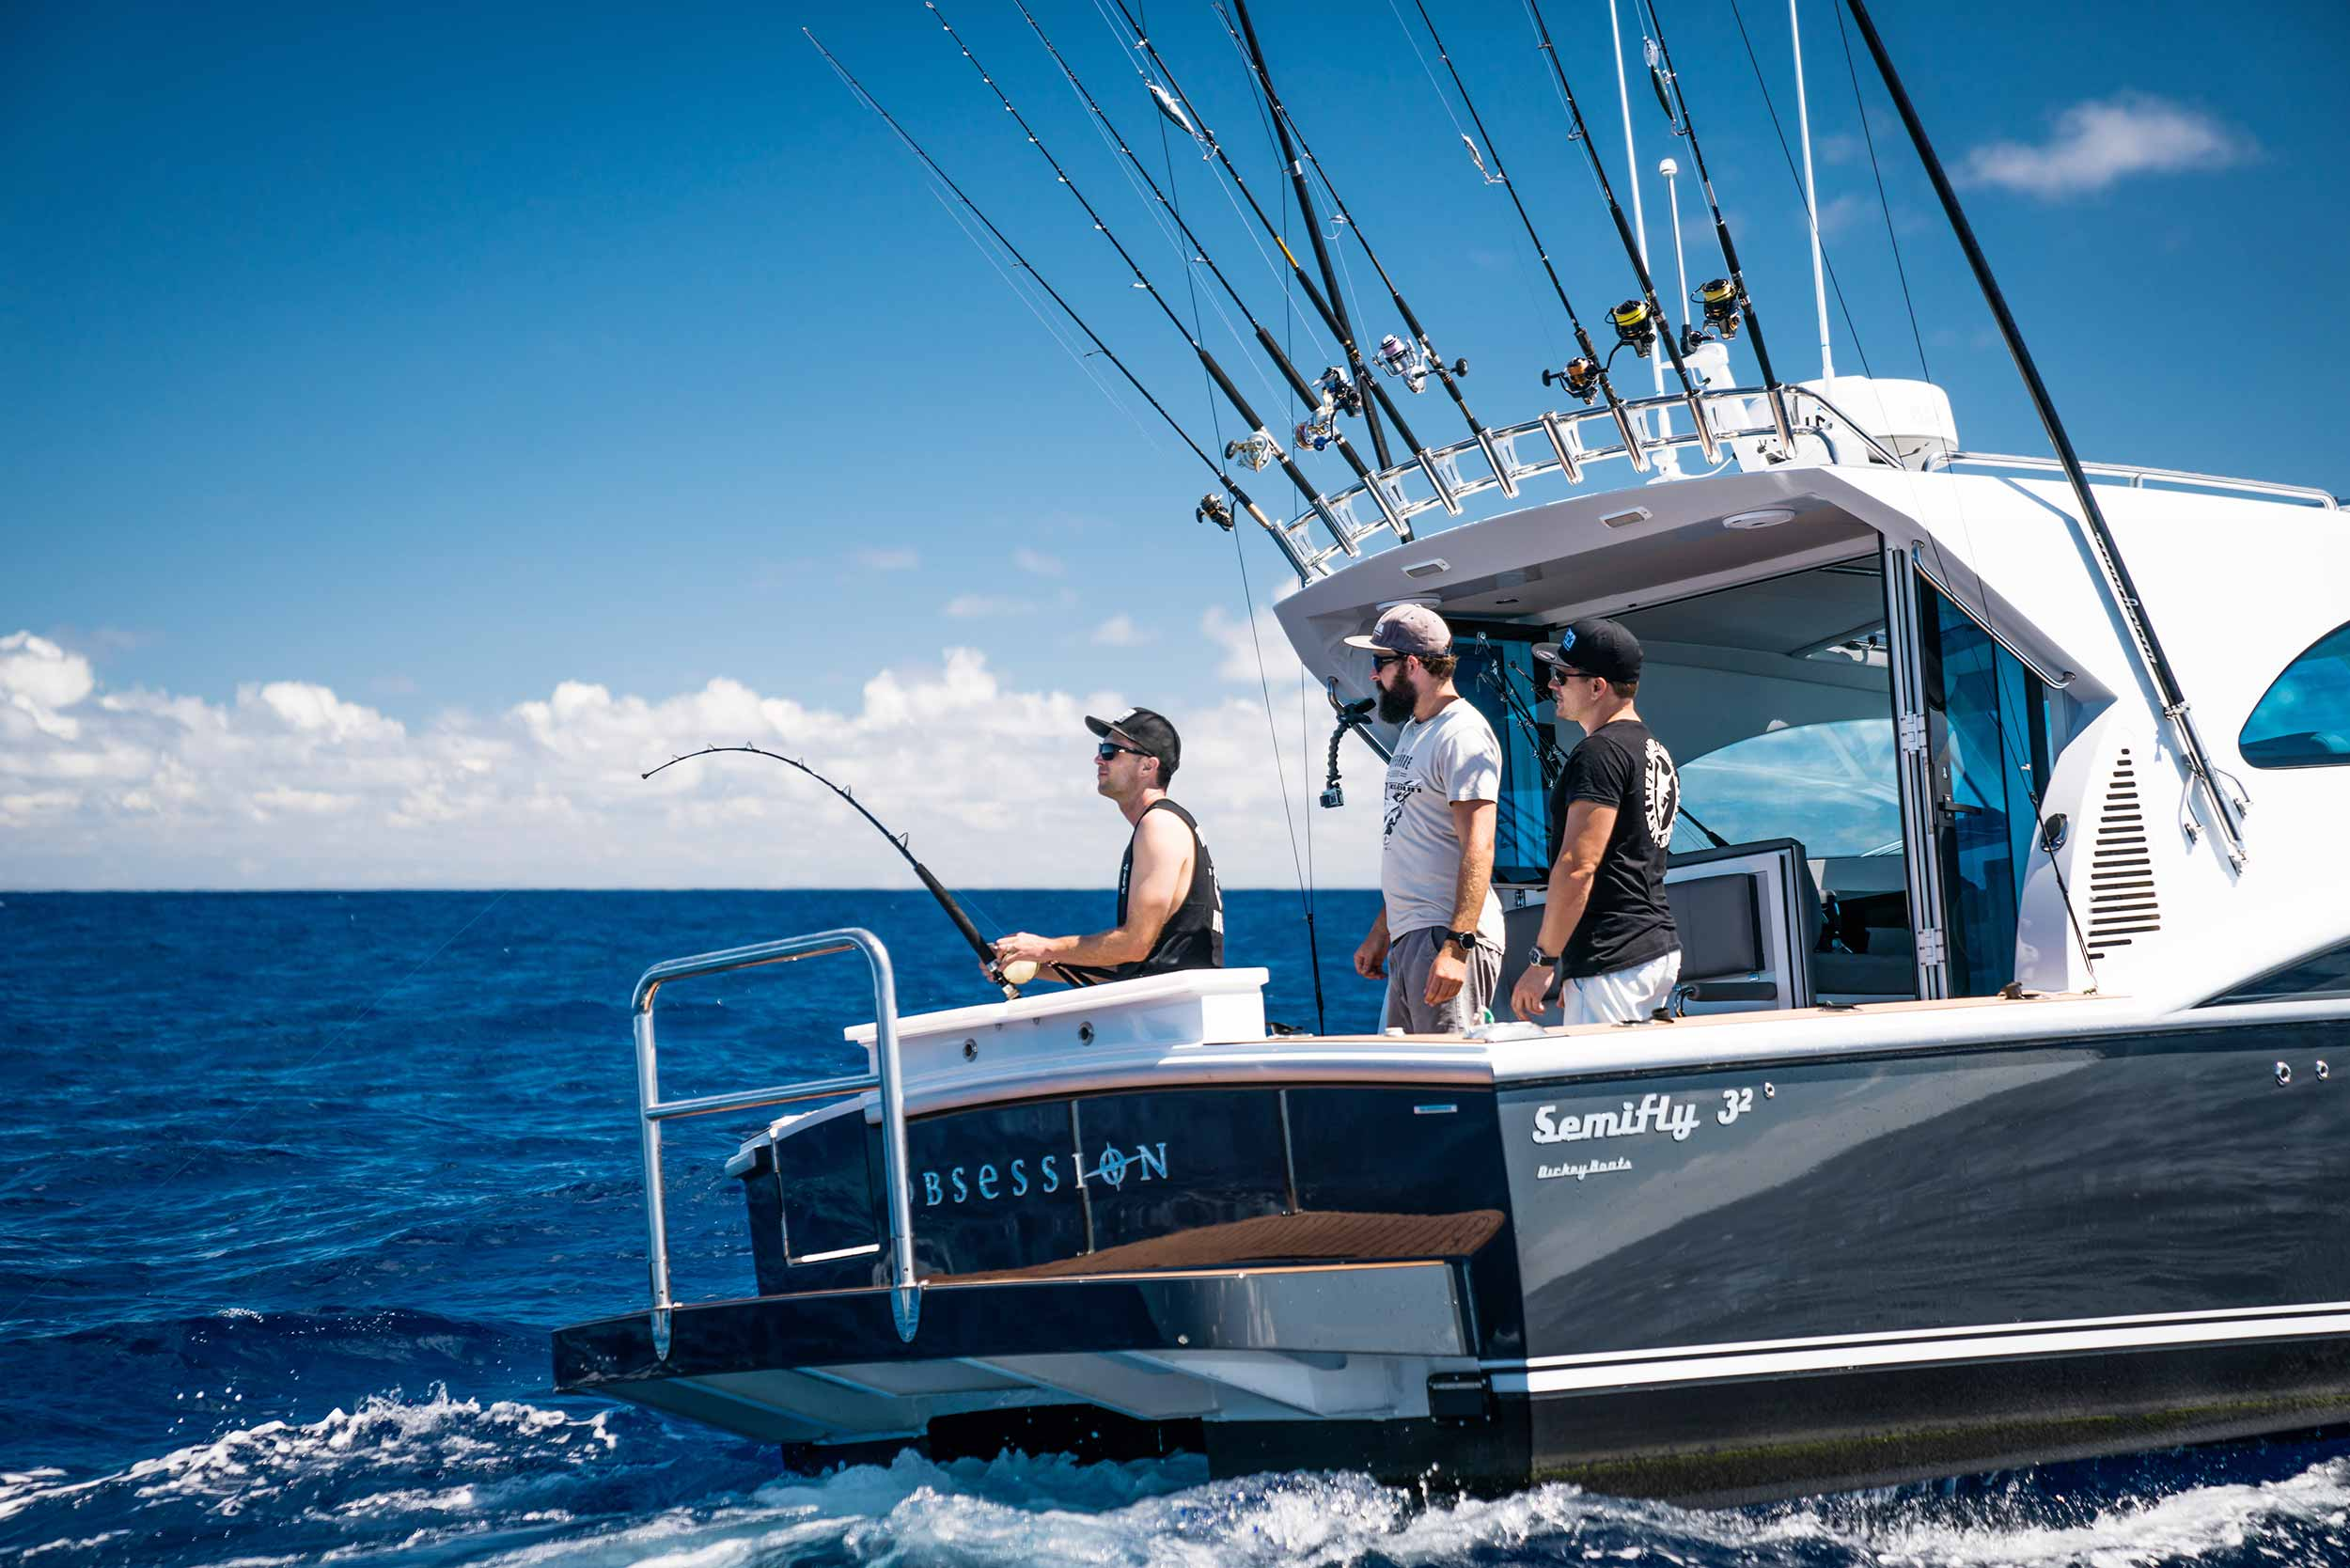 Dickey Semifly 32 on blue marlin Port Stephens